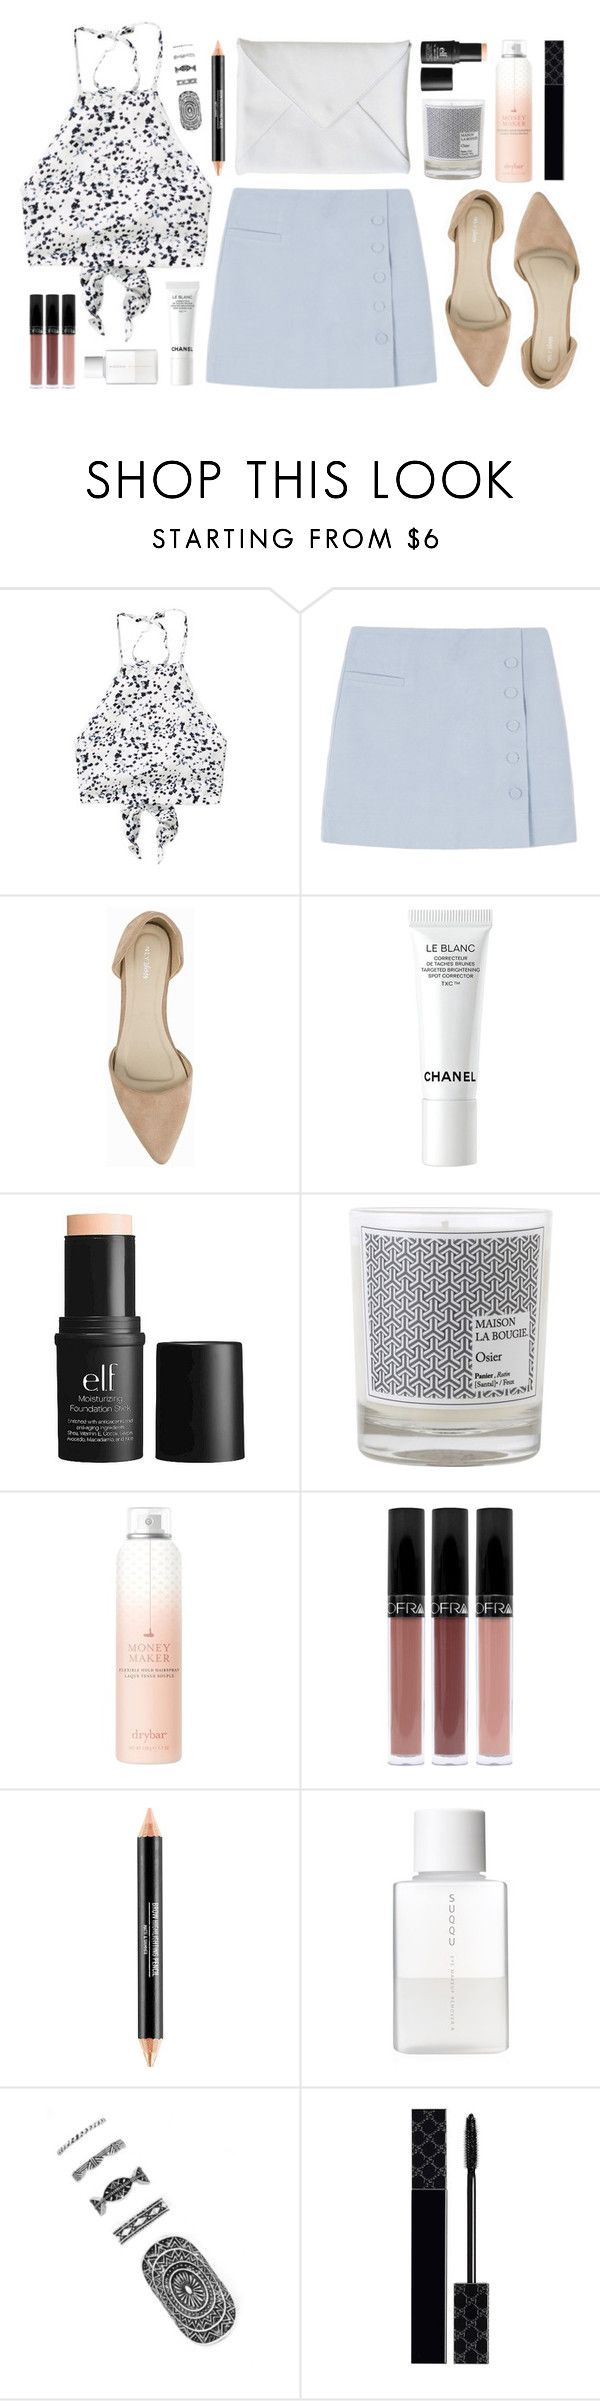 """""""Sunday best"""" by sophiehackett ❤ liked on Polyvore featuring Nly Shoes, Chanel, e.l.f., Maison La Bougie, Drybar, SUQQU, Forever 21 and Gucci"""